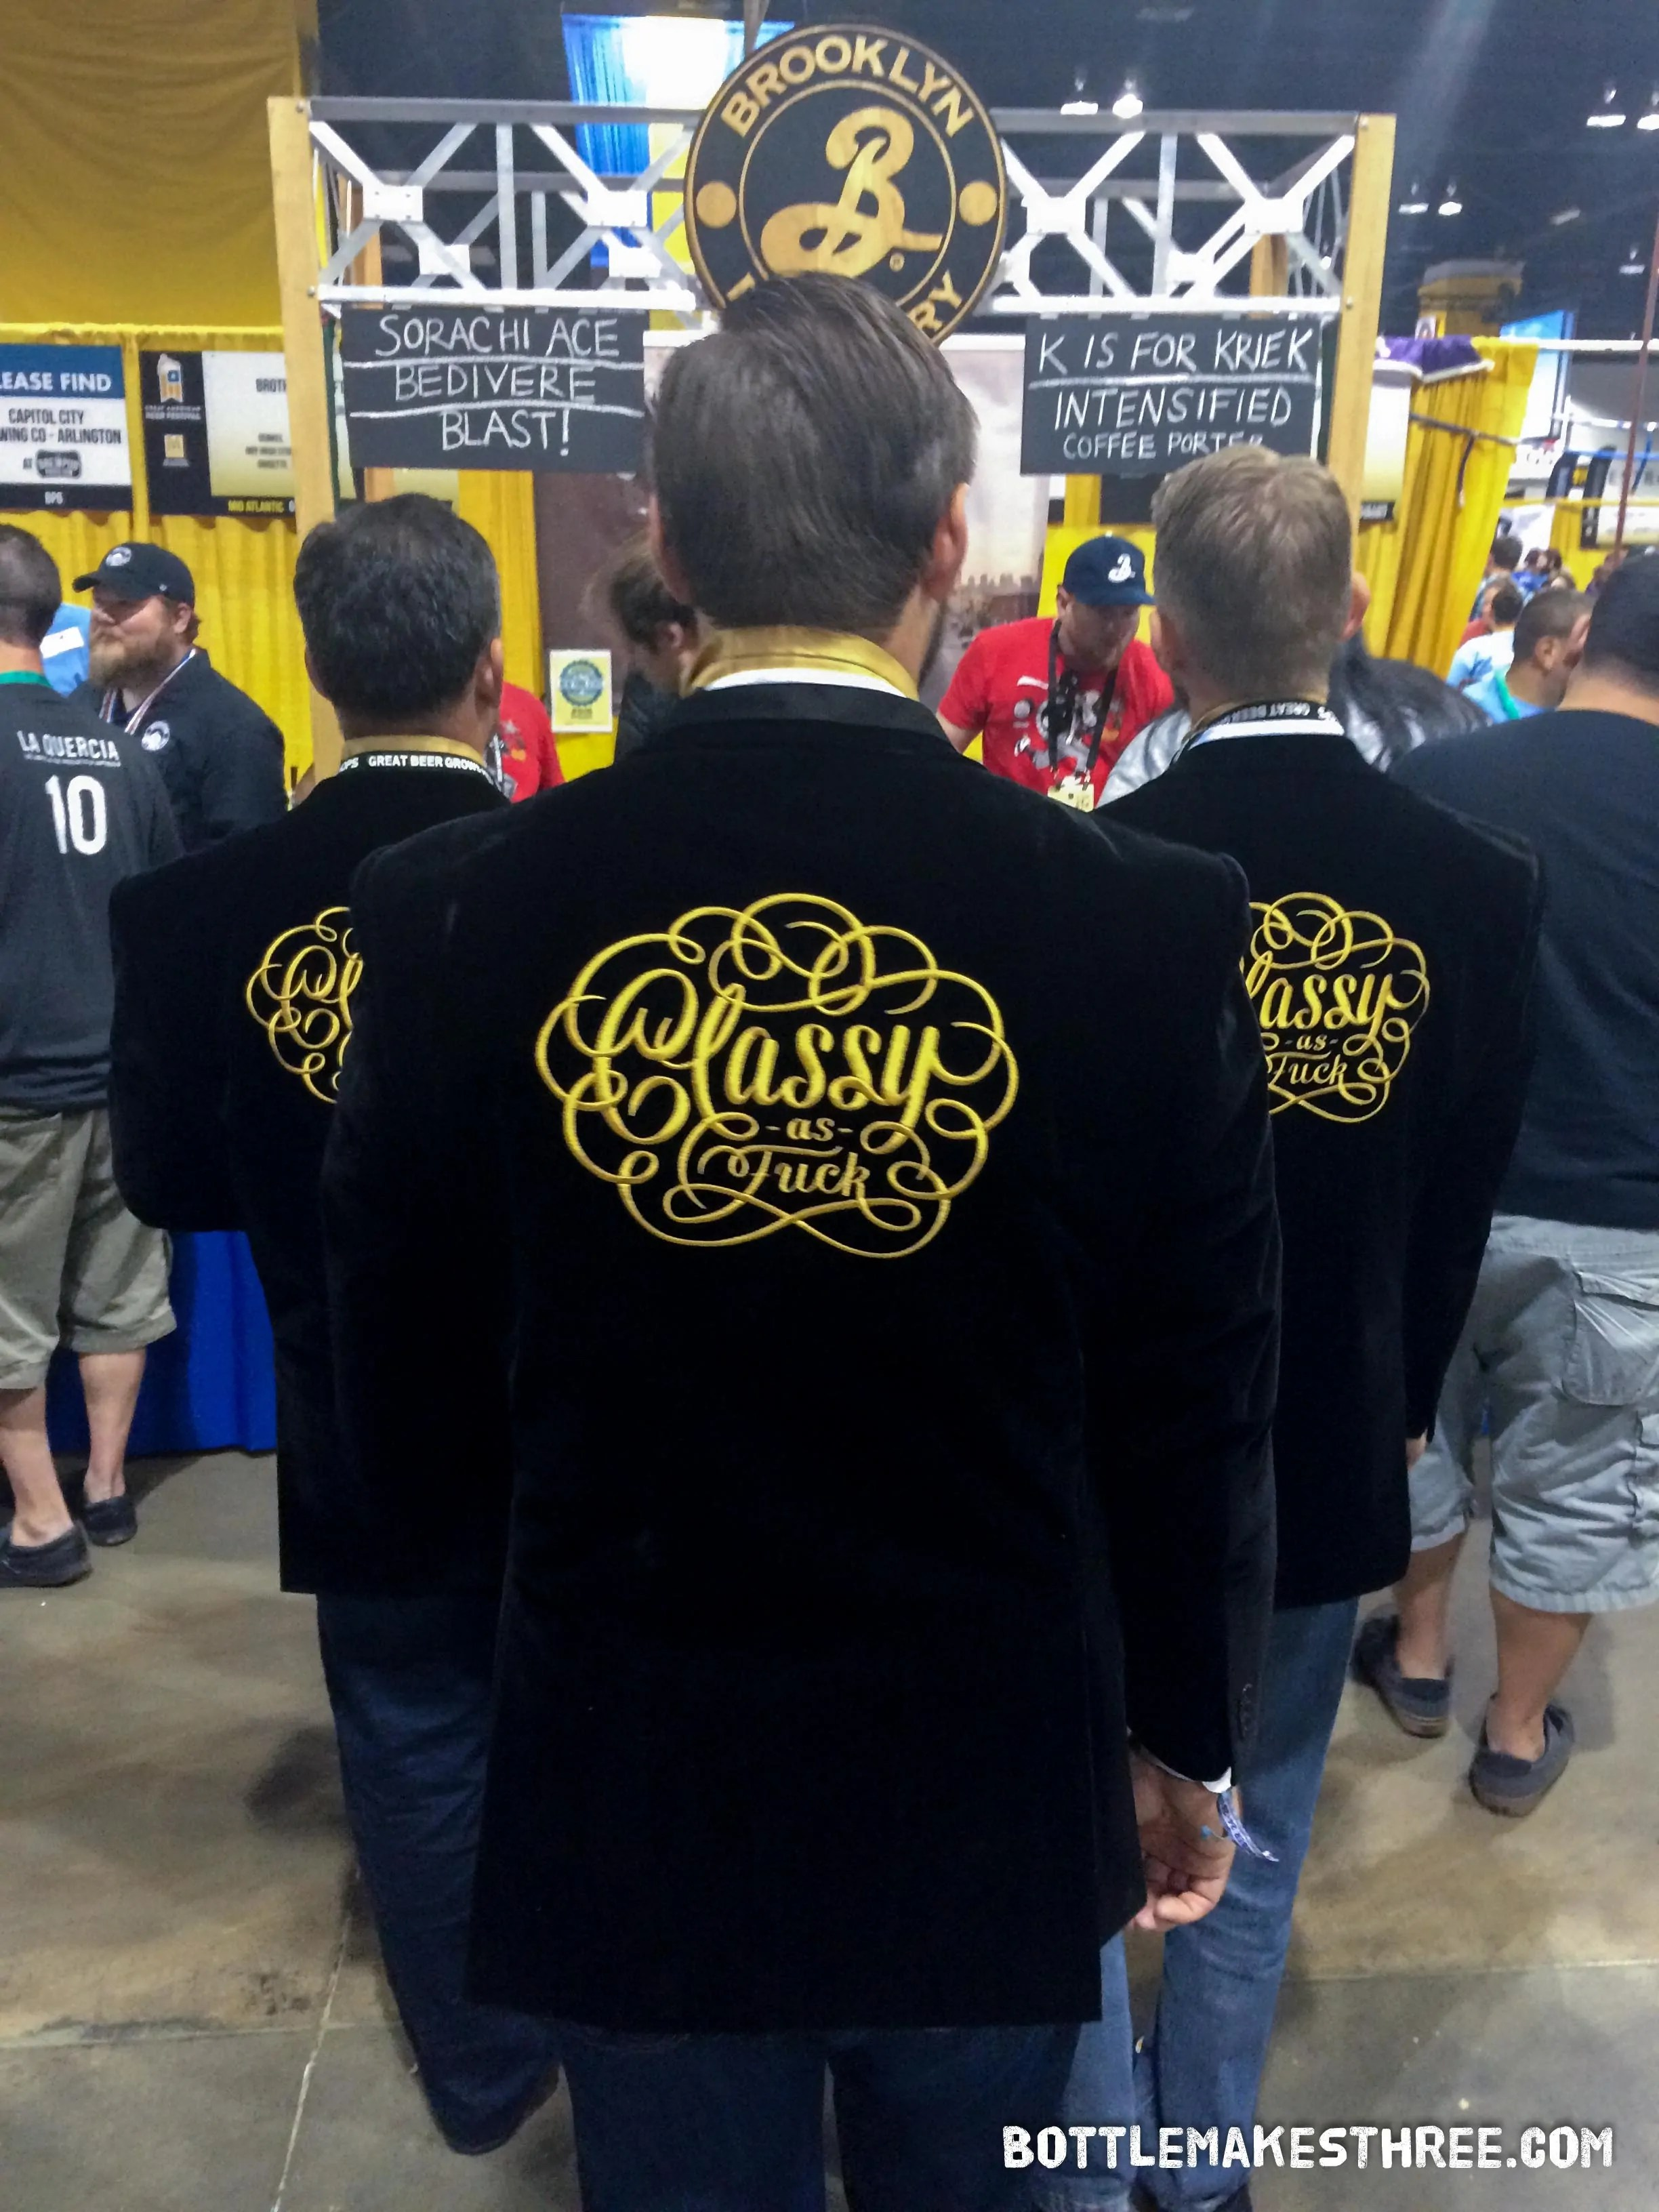 Experience everything the Great American Beer Festival (GABF) has to offer. Hint: It's more than just drinking beer. | BottleMakesThree.com